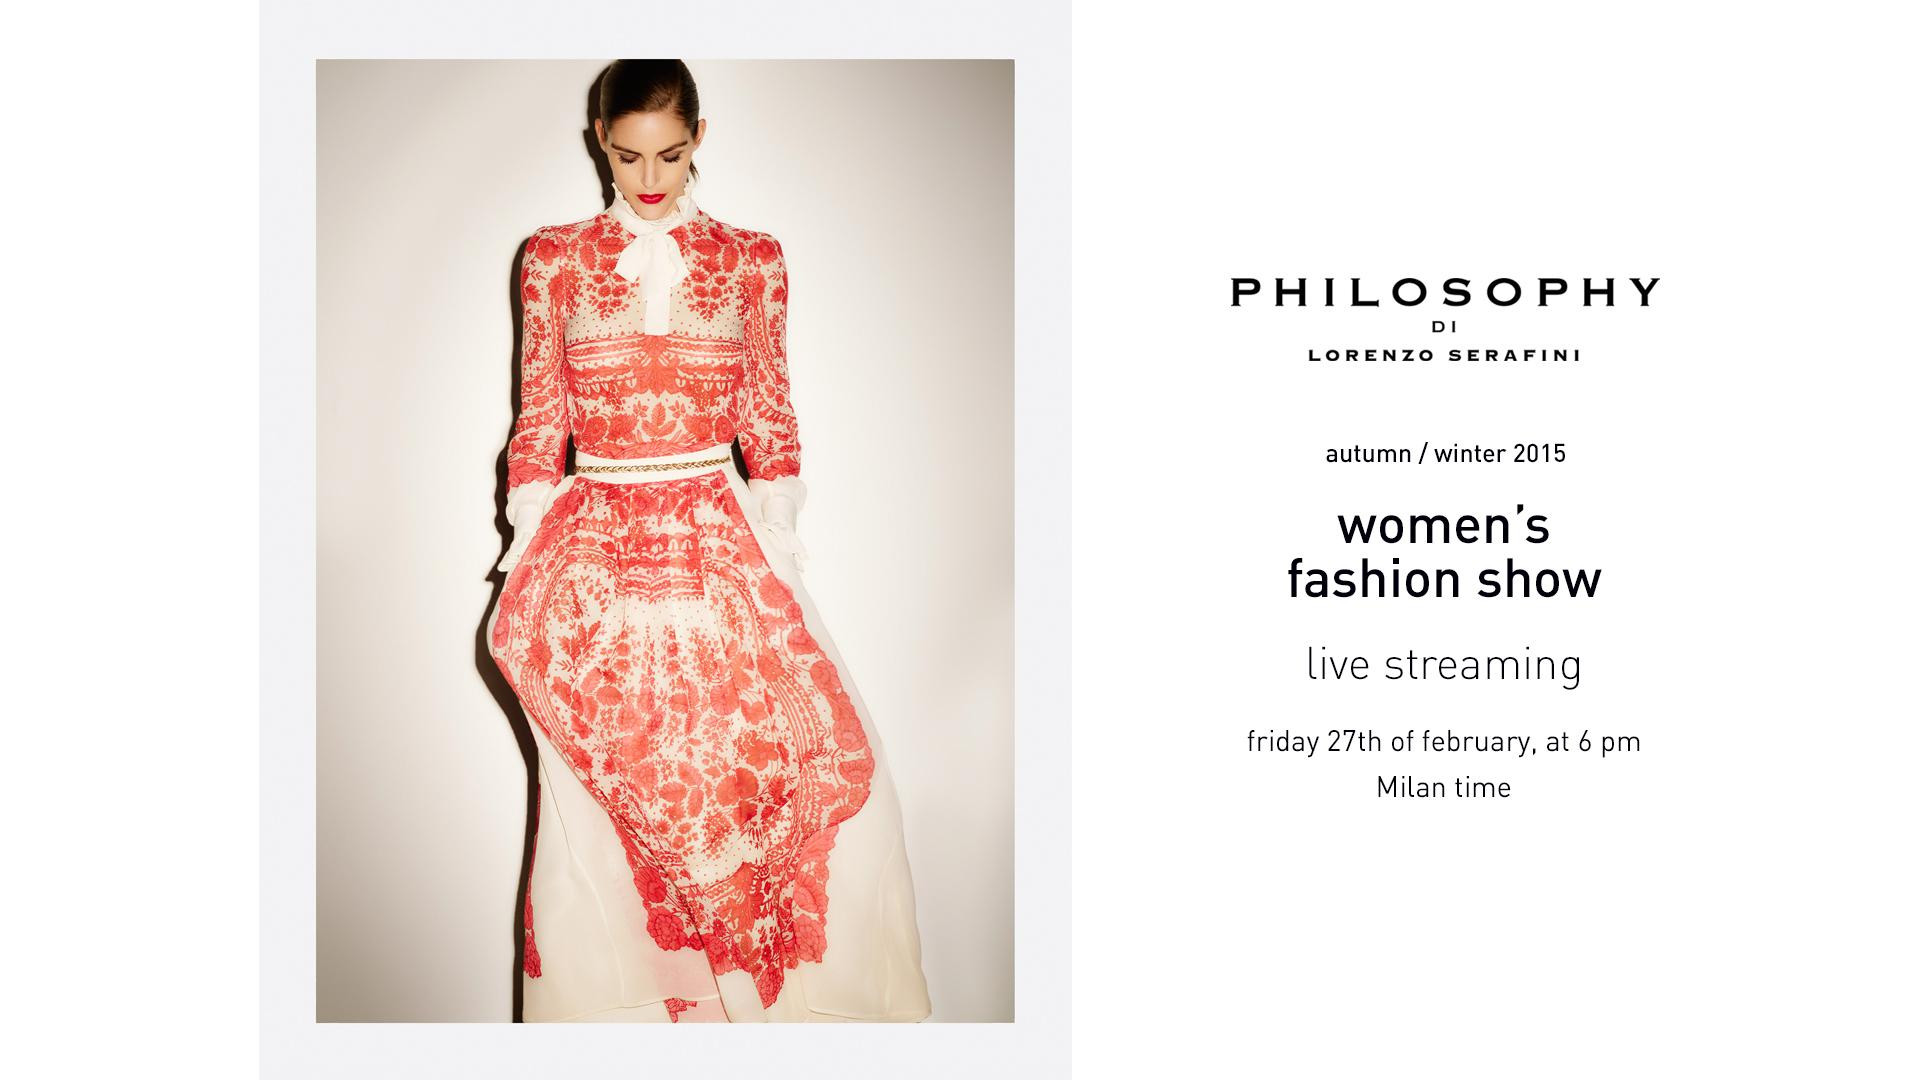 Philosophy di Lorenzo Serafini Fall Winter 2015-16 Womens Fashion Show Live Streaming 27th February 6pm Milan